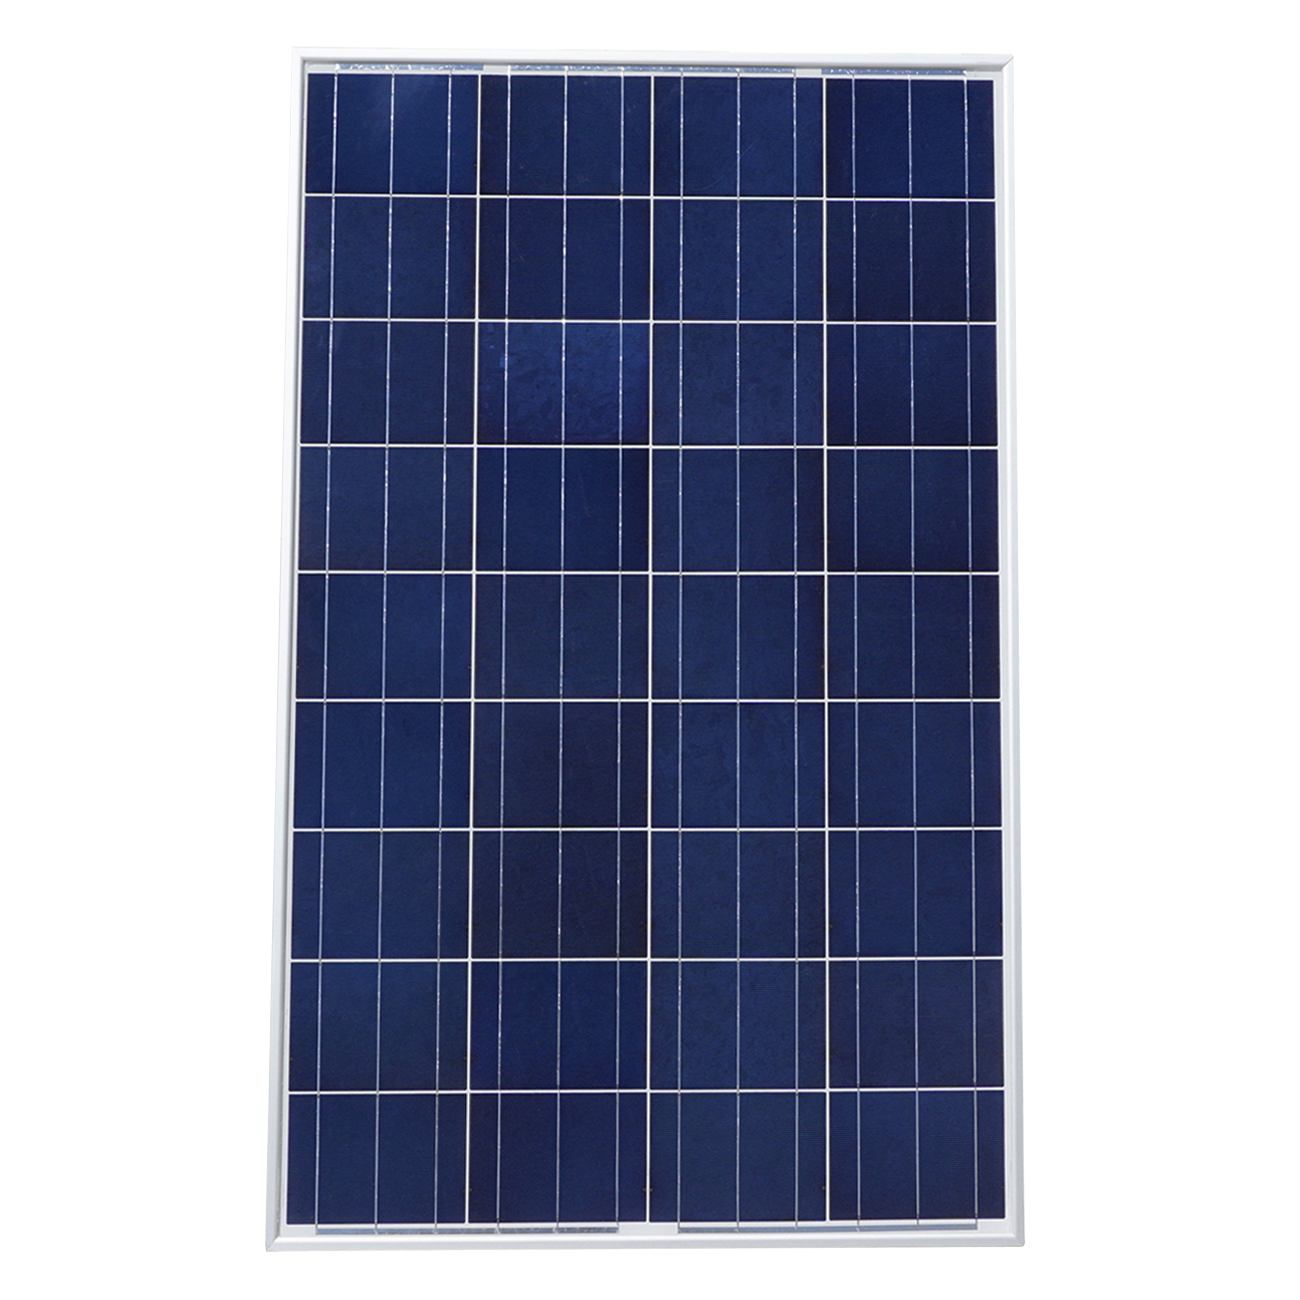 AU CA EU USA Stock 100W 18V Polycrystalline Solar Panel for 12v Battery Off Grid System Solar for Home System dc house usa uk stock 300w off grid solar system kits new 100w solar module 12v home 20a controller 1000w inverter